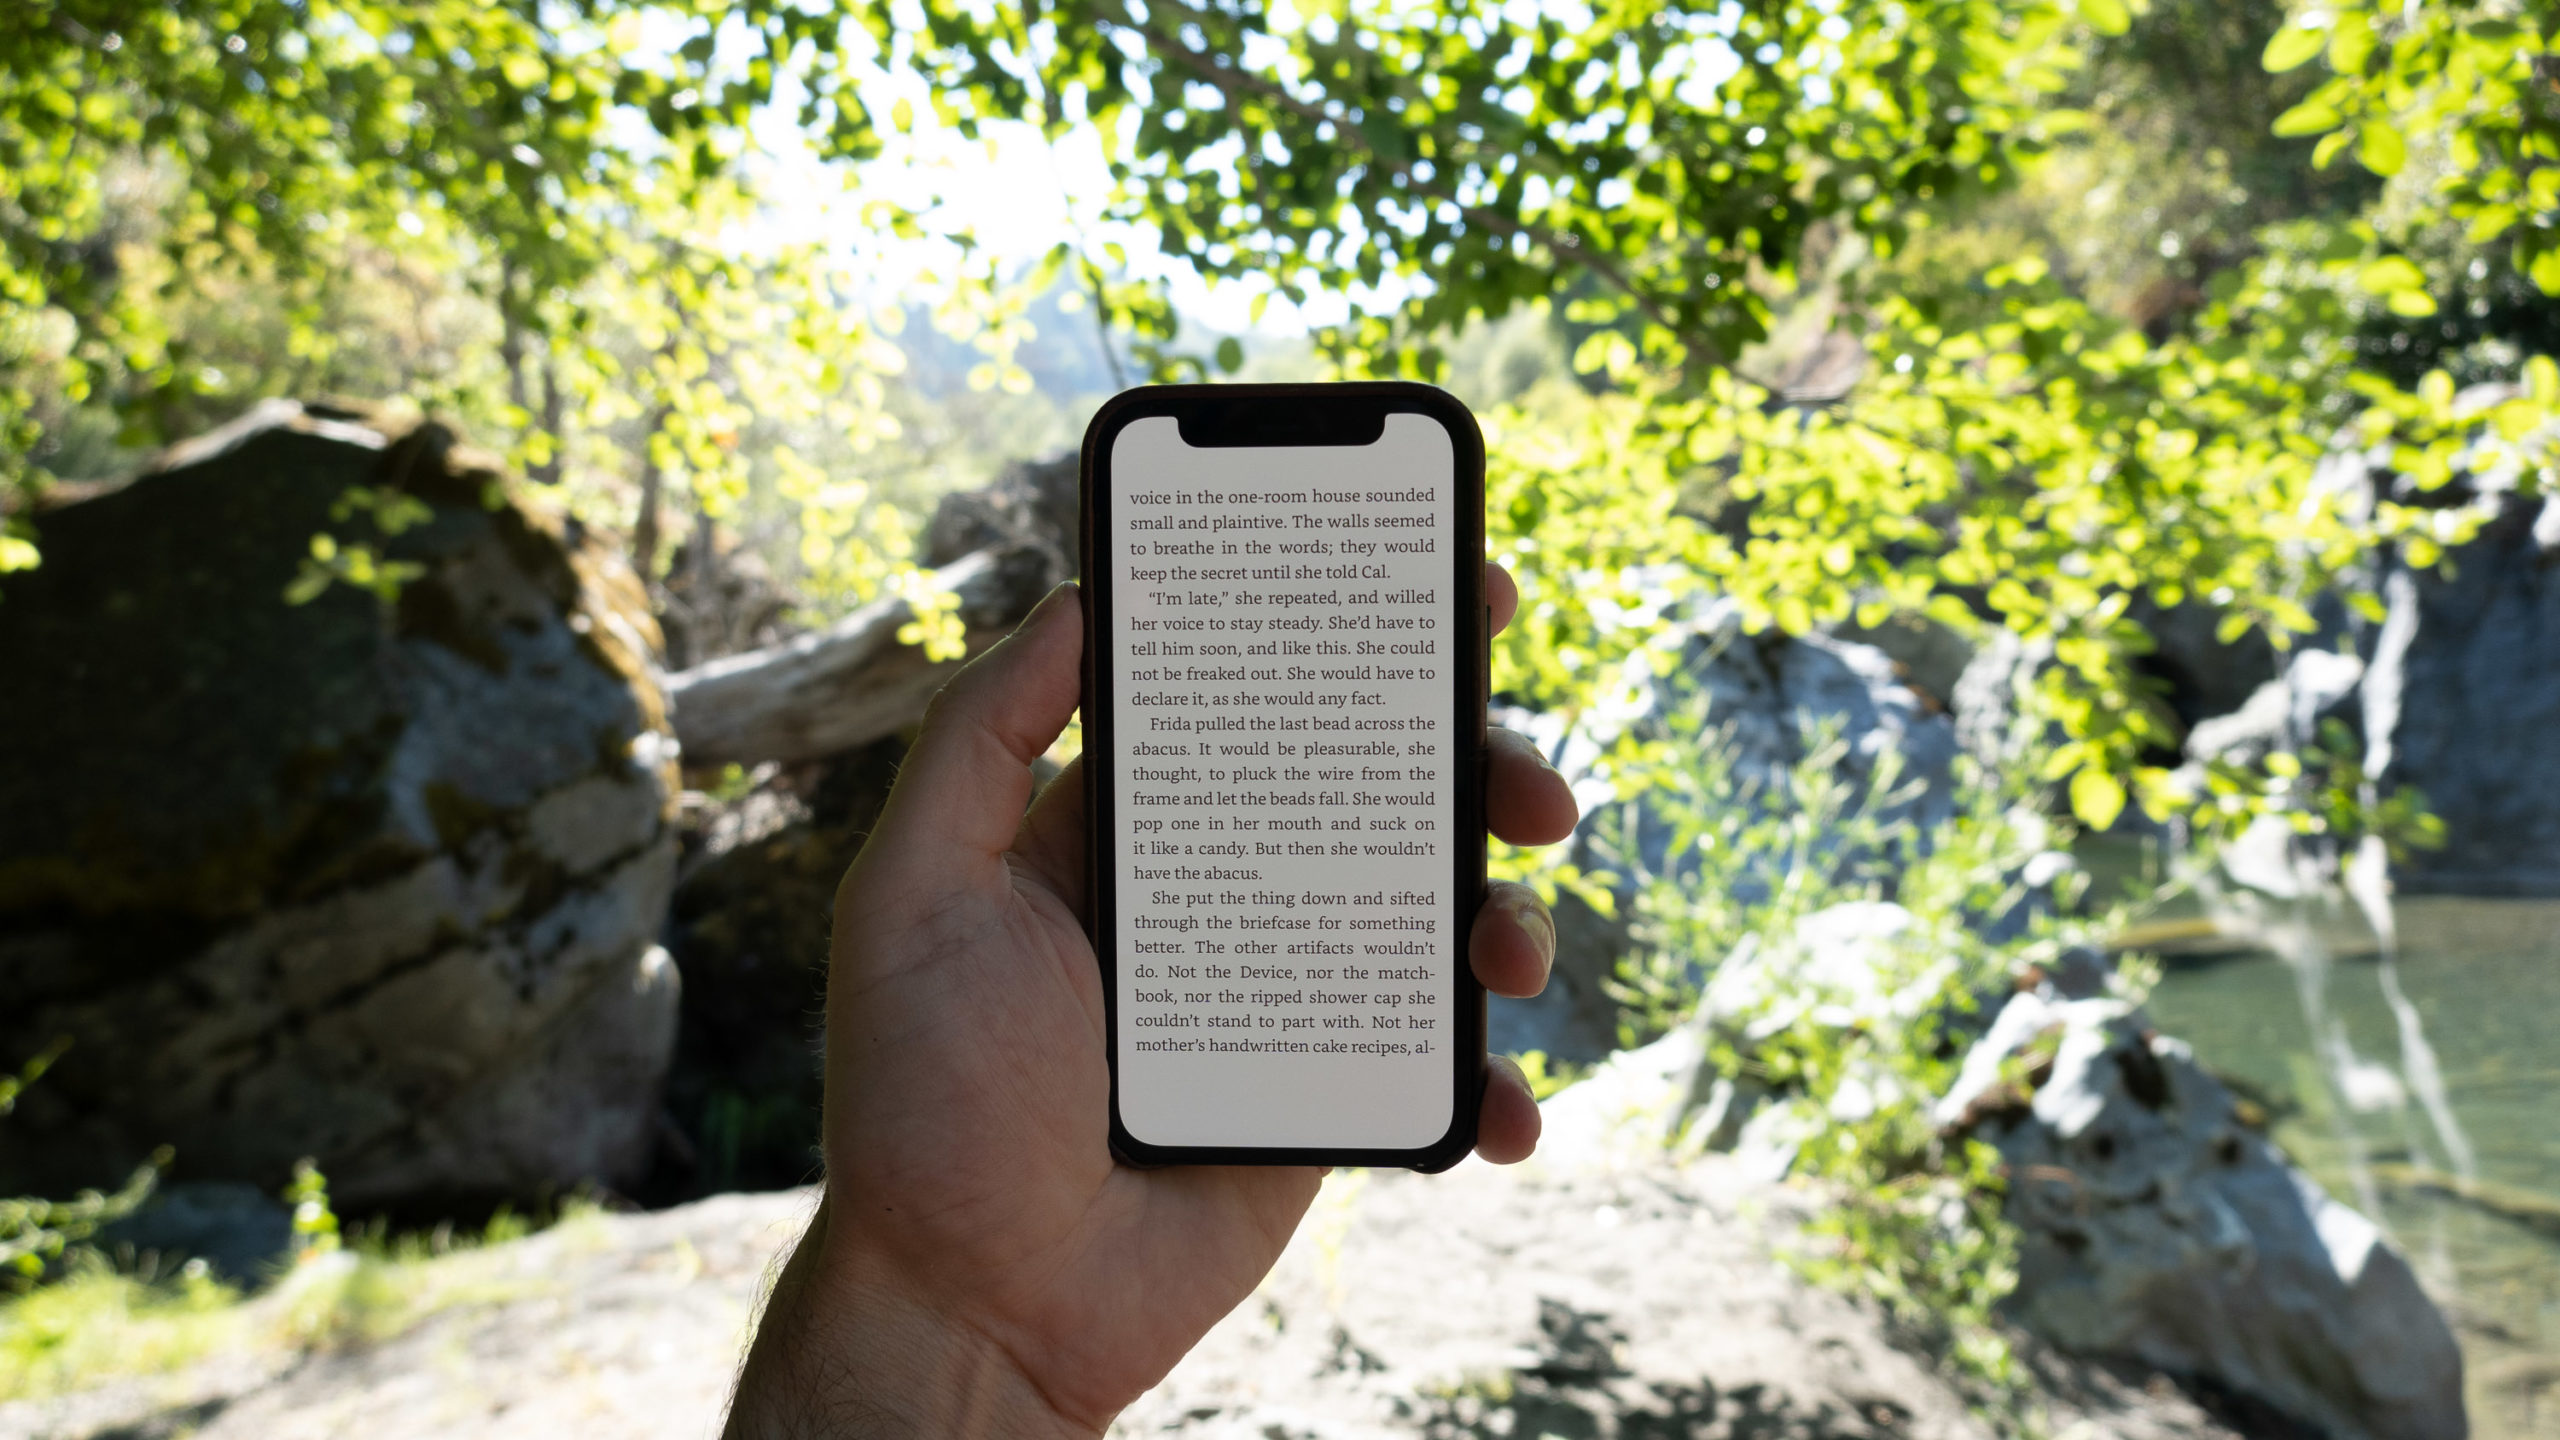 Reading a book under the trees on a mobile phone